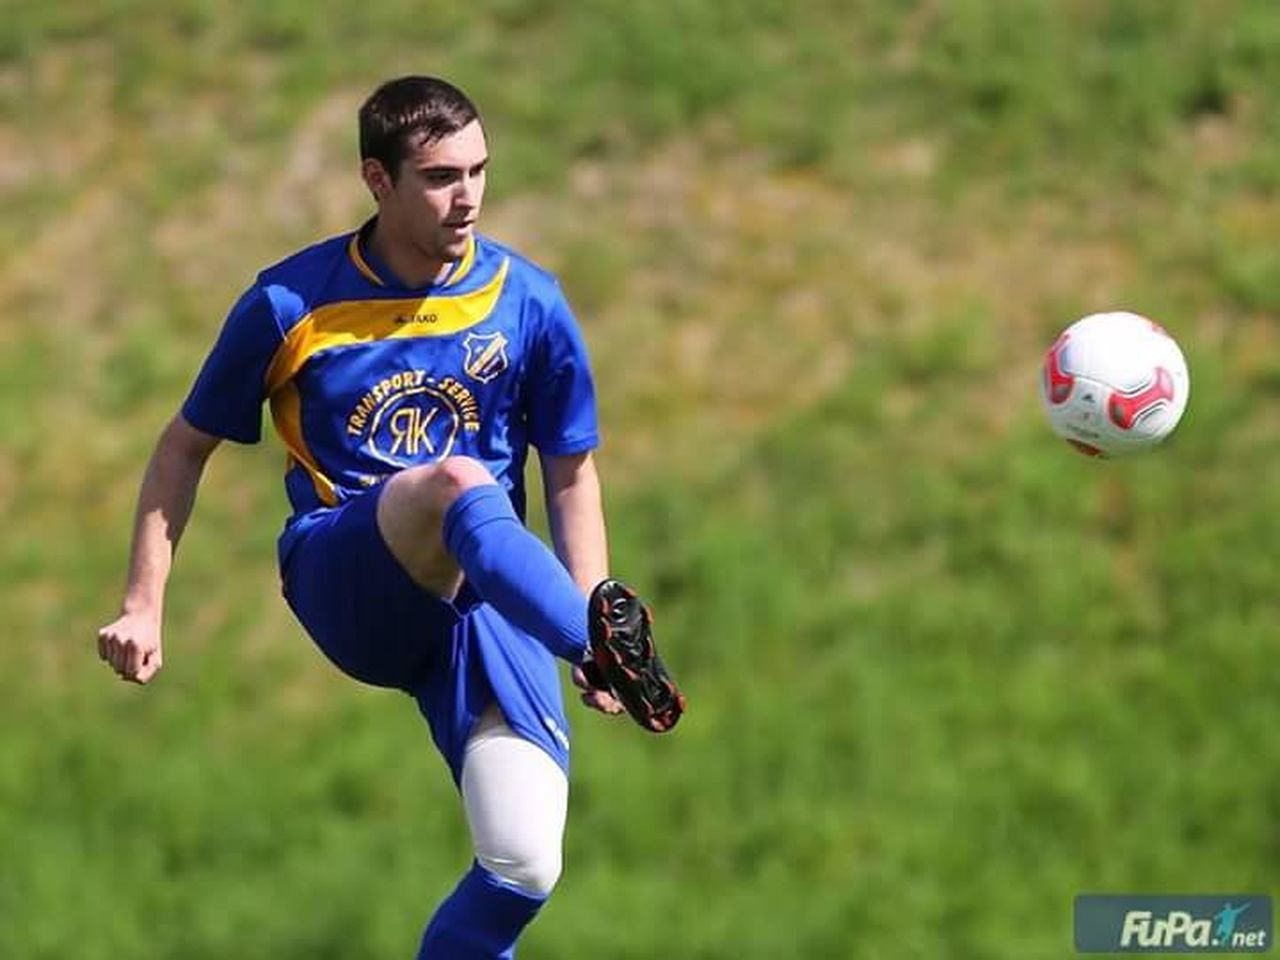 sport, soccer, playing, grass, soccer ball, sports uniform, competition, motion, soccer uniform, kicking, focus on foreground, outdoors, playing field, ball, blue, soccer player, human body part, activity, one person, stadium, competitive sport, skill, match - sport, people, american football - ball, day, adult, sportsman, sports team, soccer field, young adult, only men, one man only, american football player, athlete, adults only, offense - sporting position